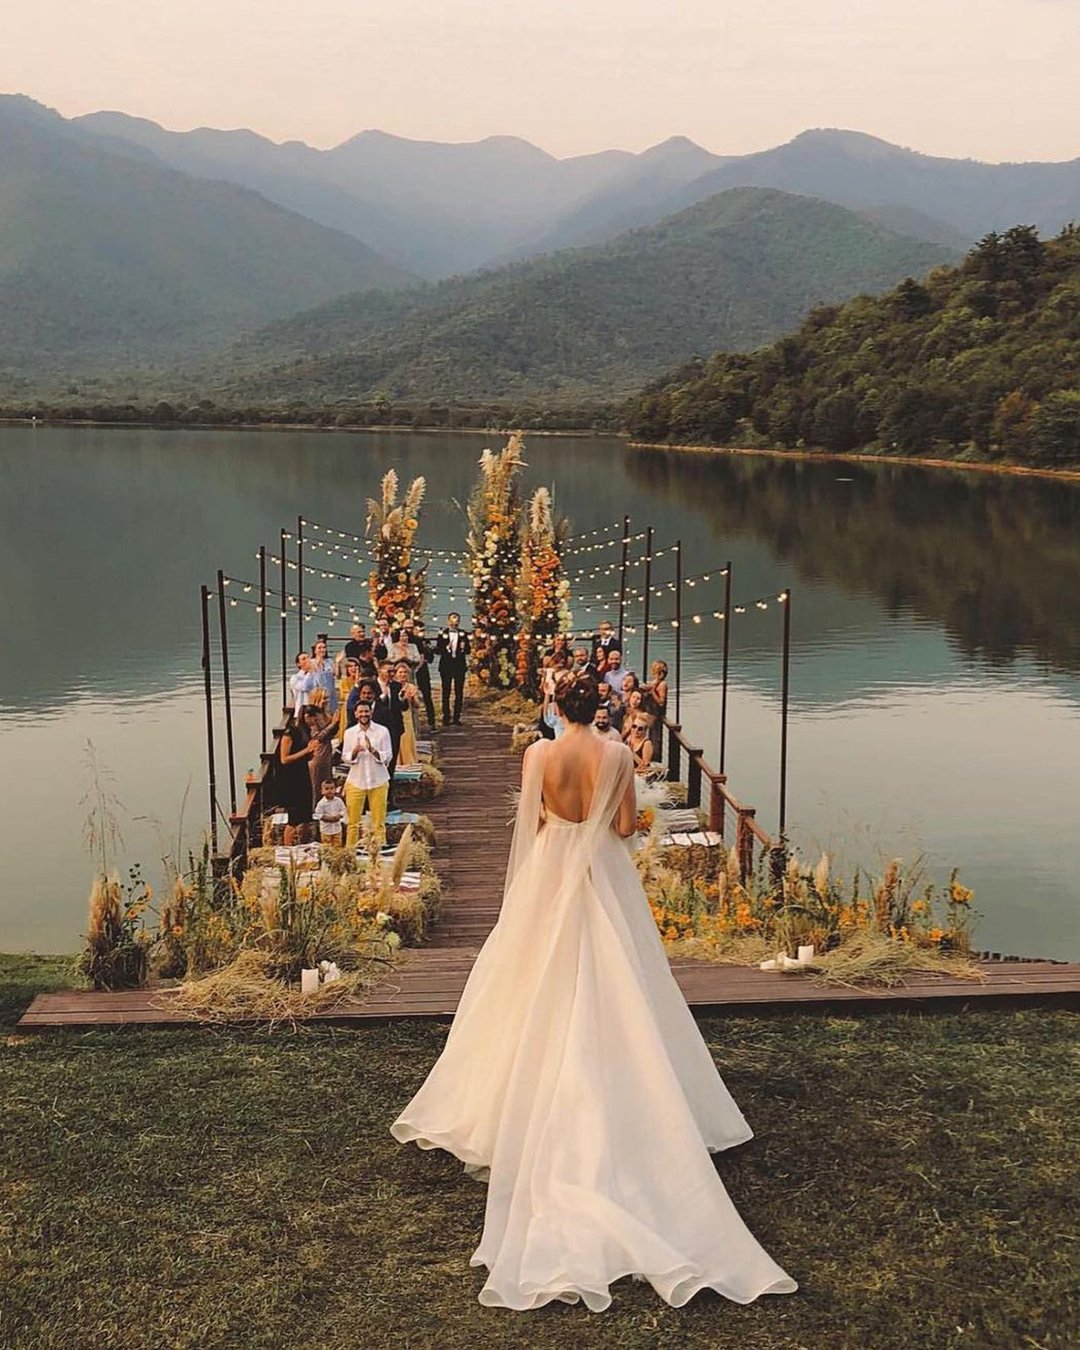 popular instagram posts 2020 venue ceremony with light chupris photo